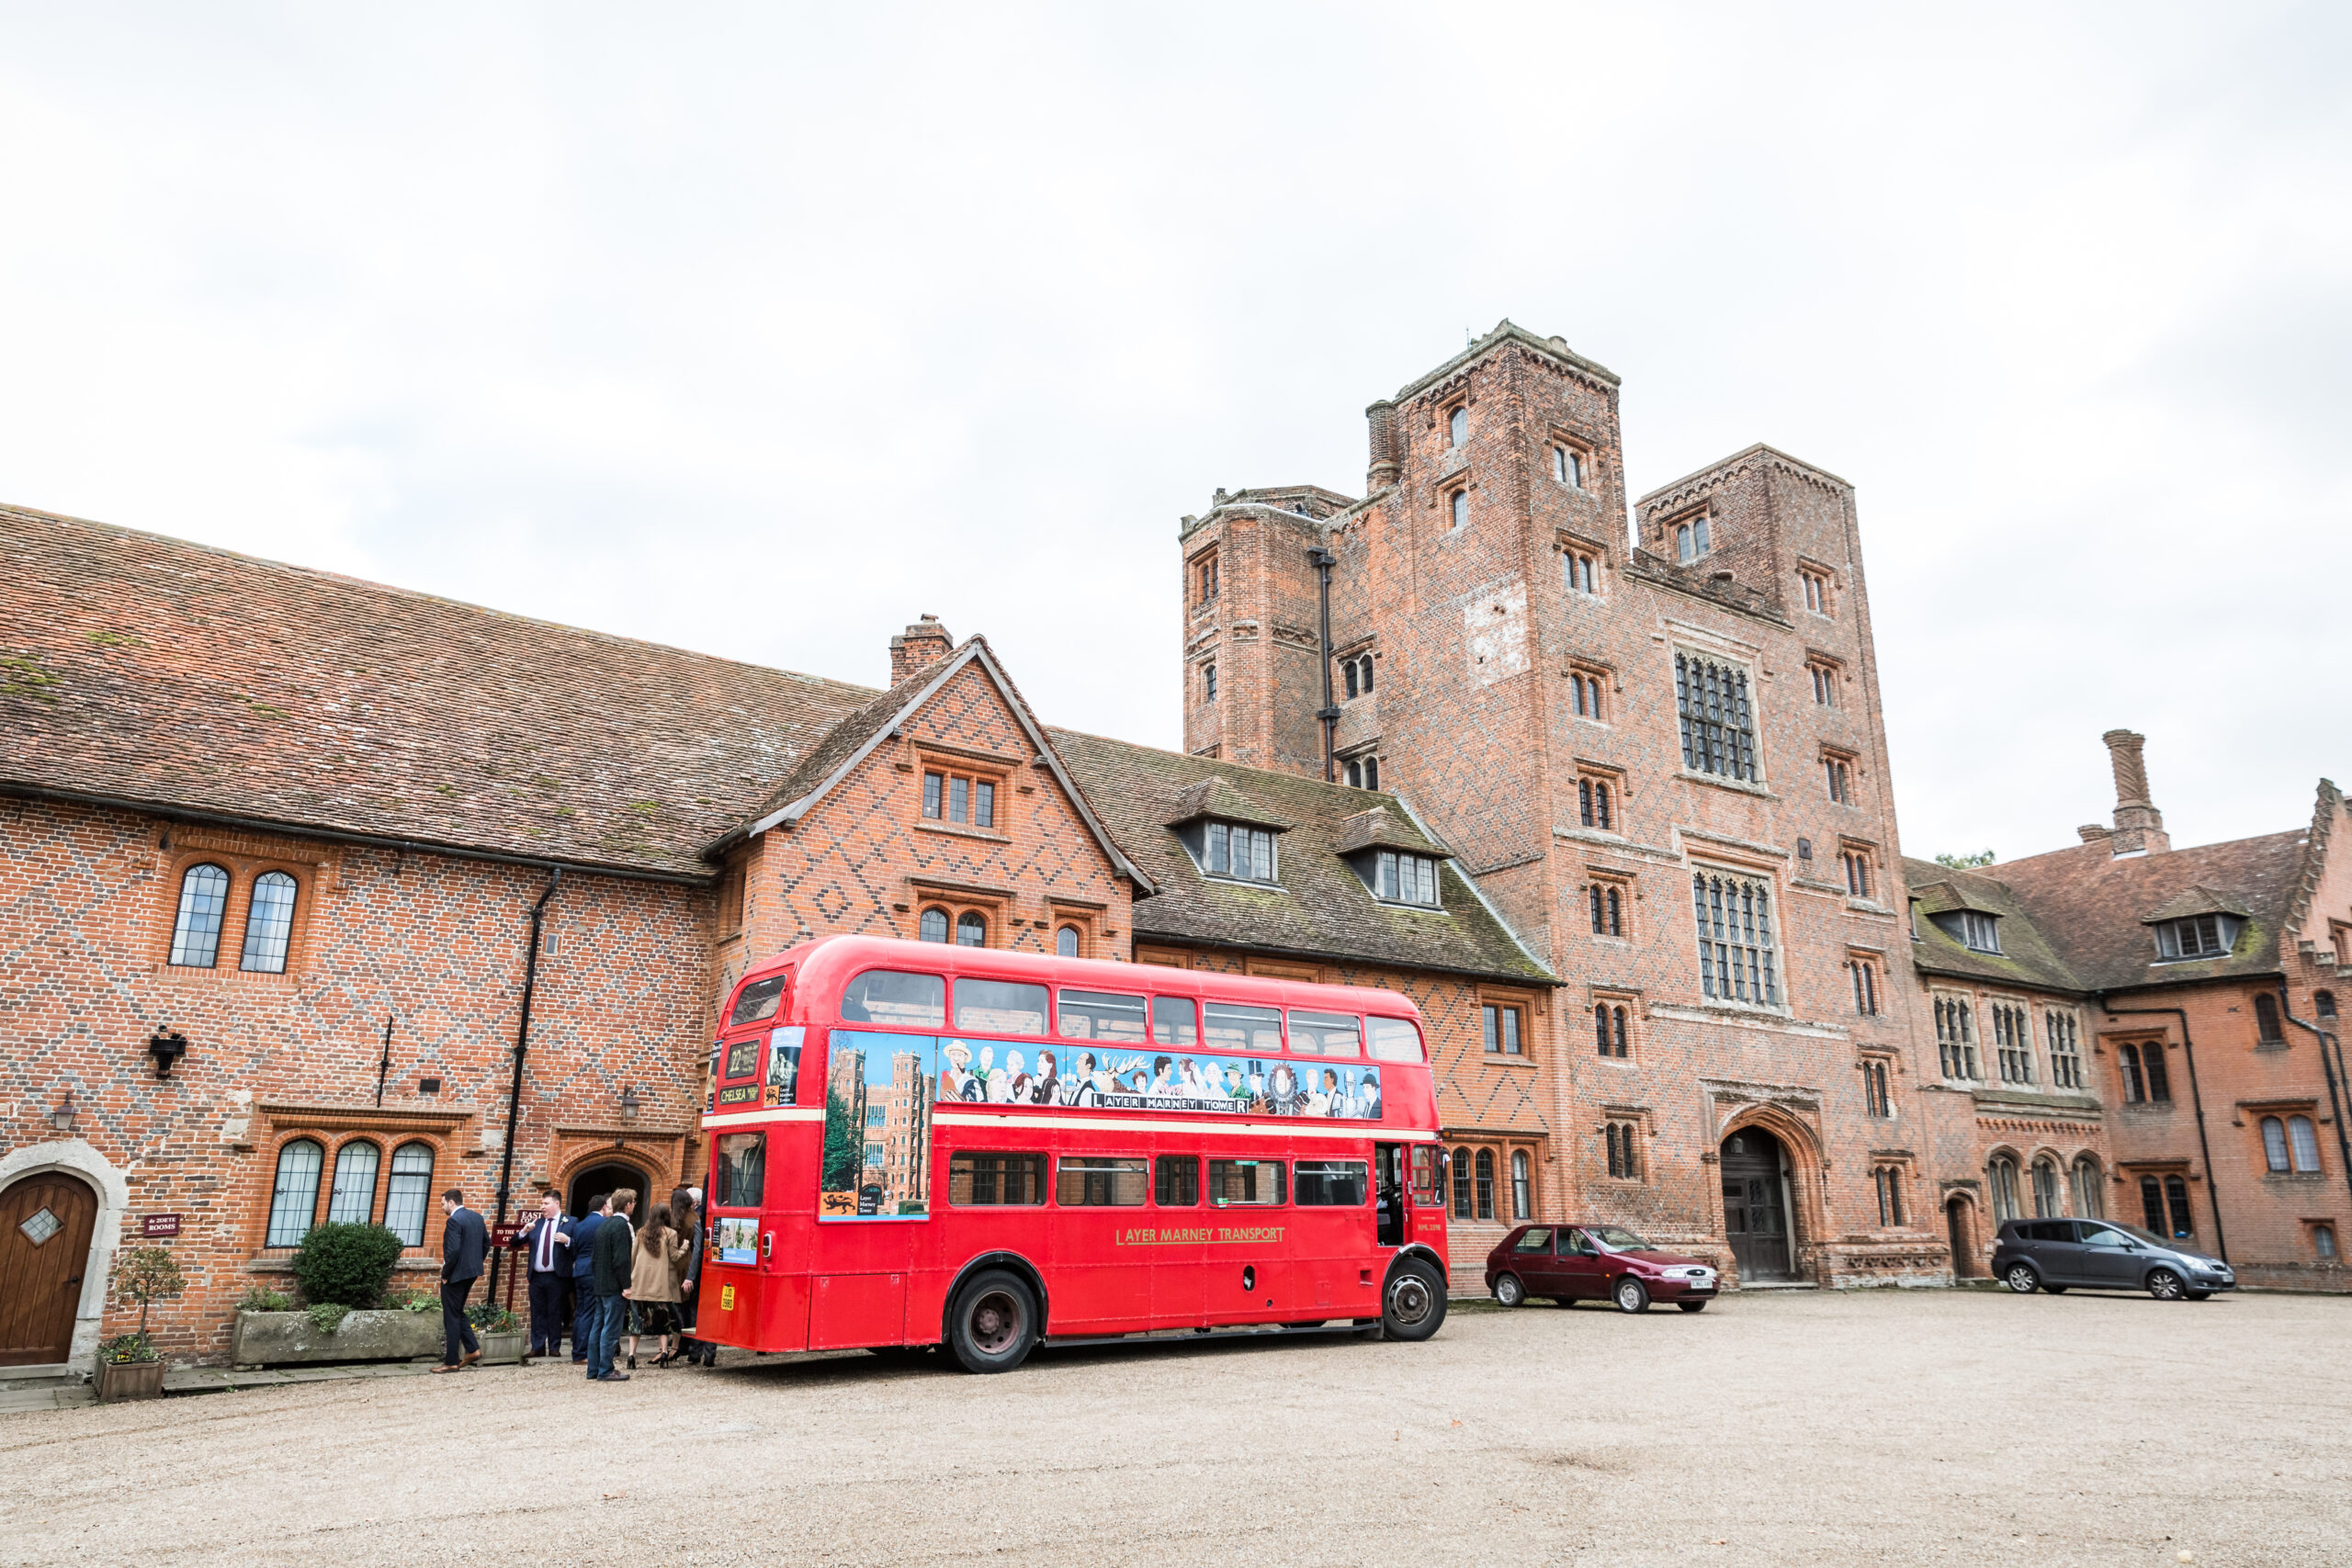 Routemaster bus dropping of guests at wedding venue